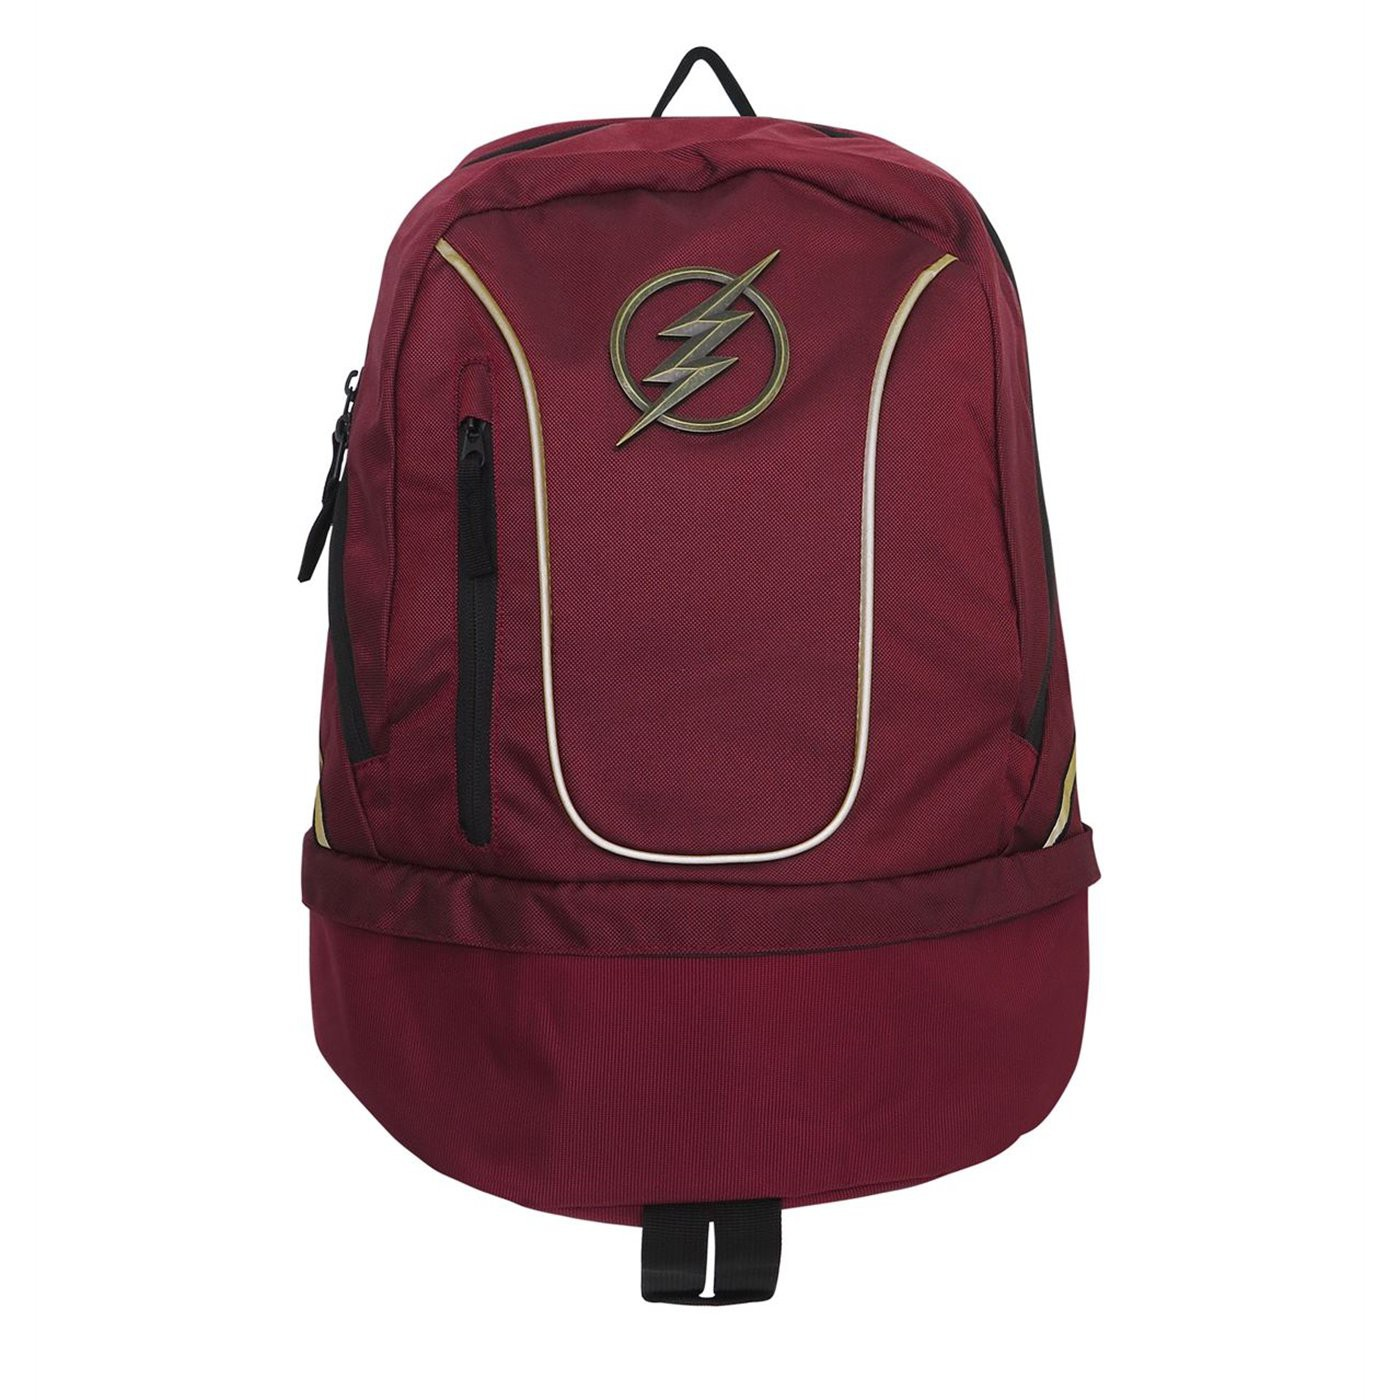 The Flash Rucksack